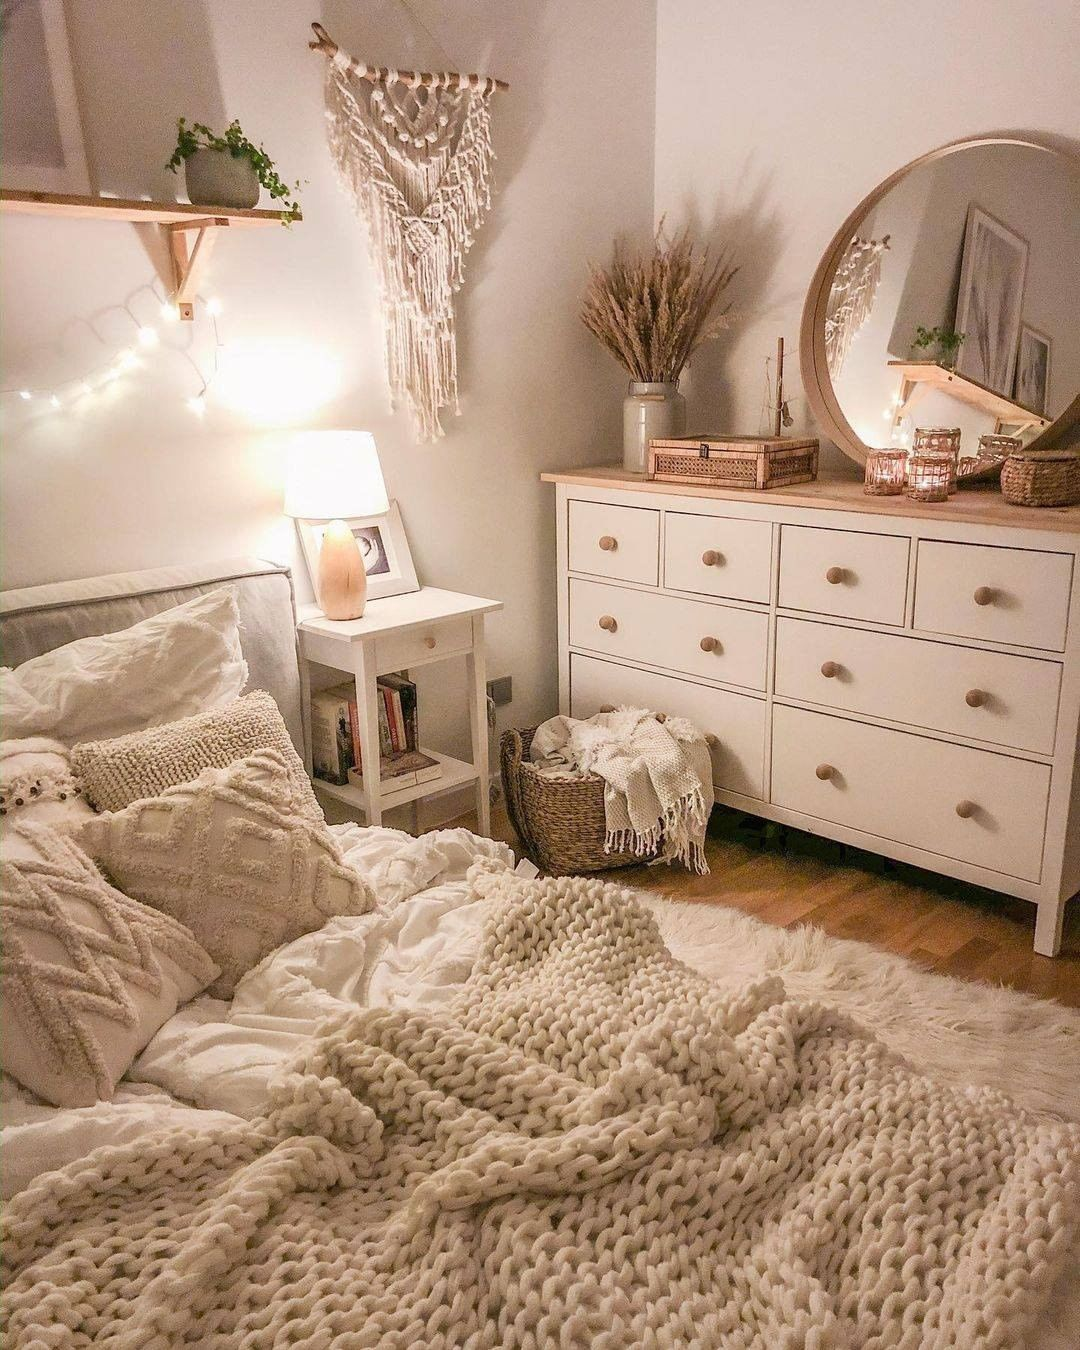 15+ Small Bedroom Ideas That Make the Most of Every Square Inch